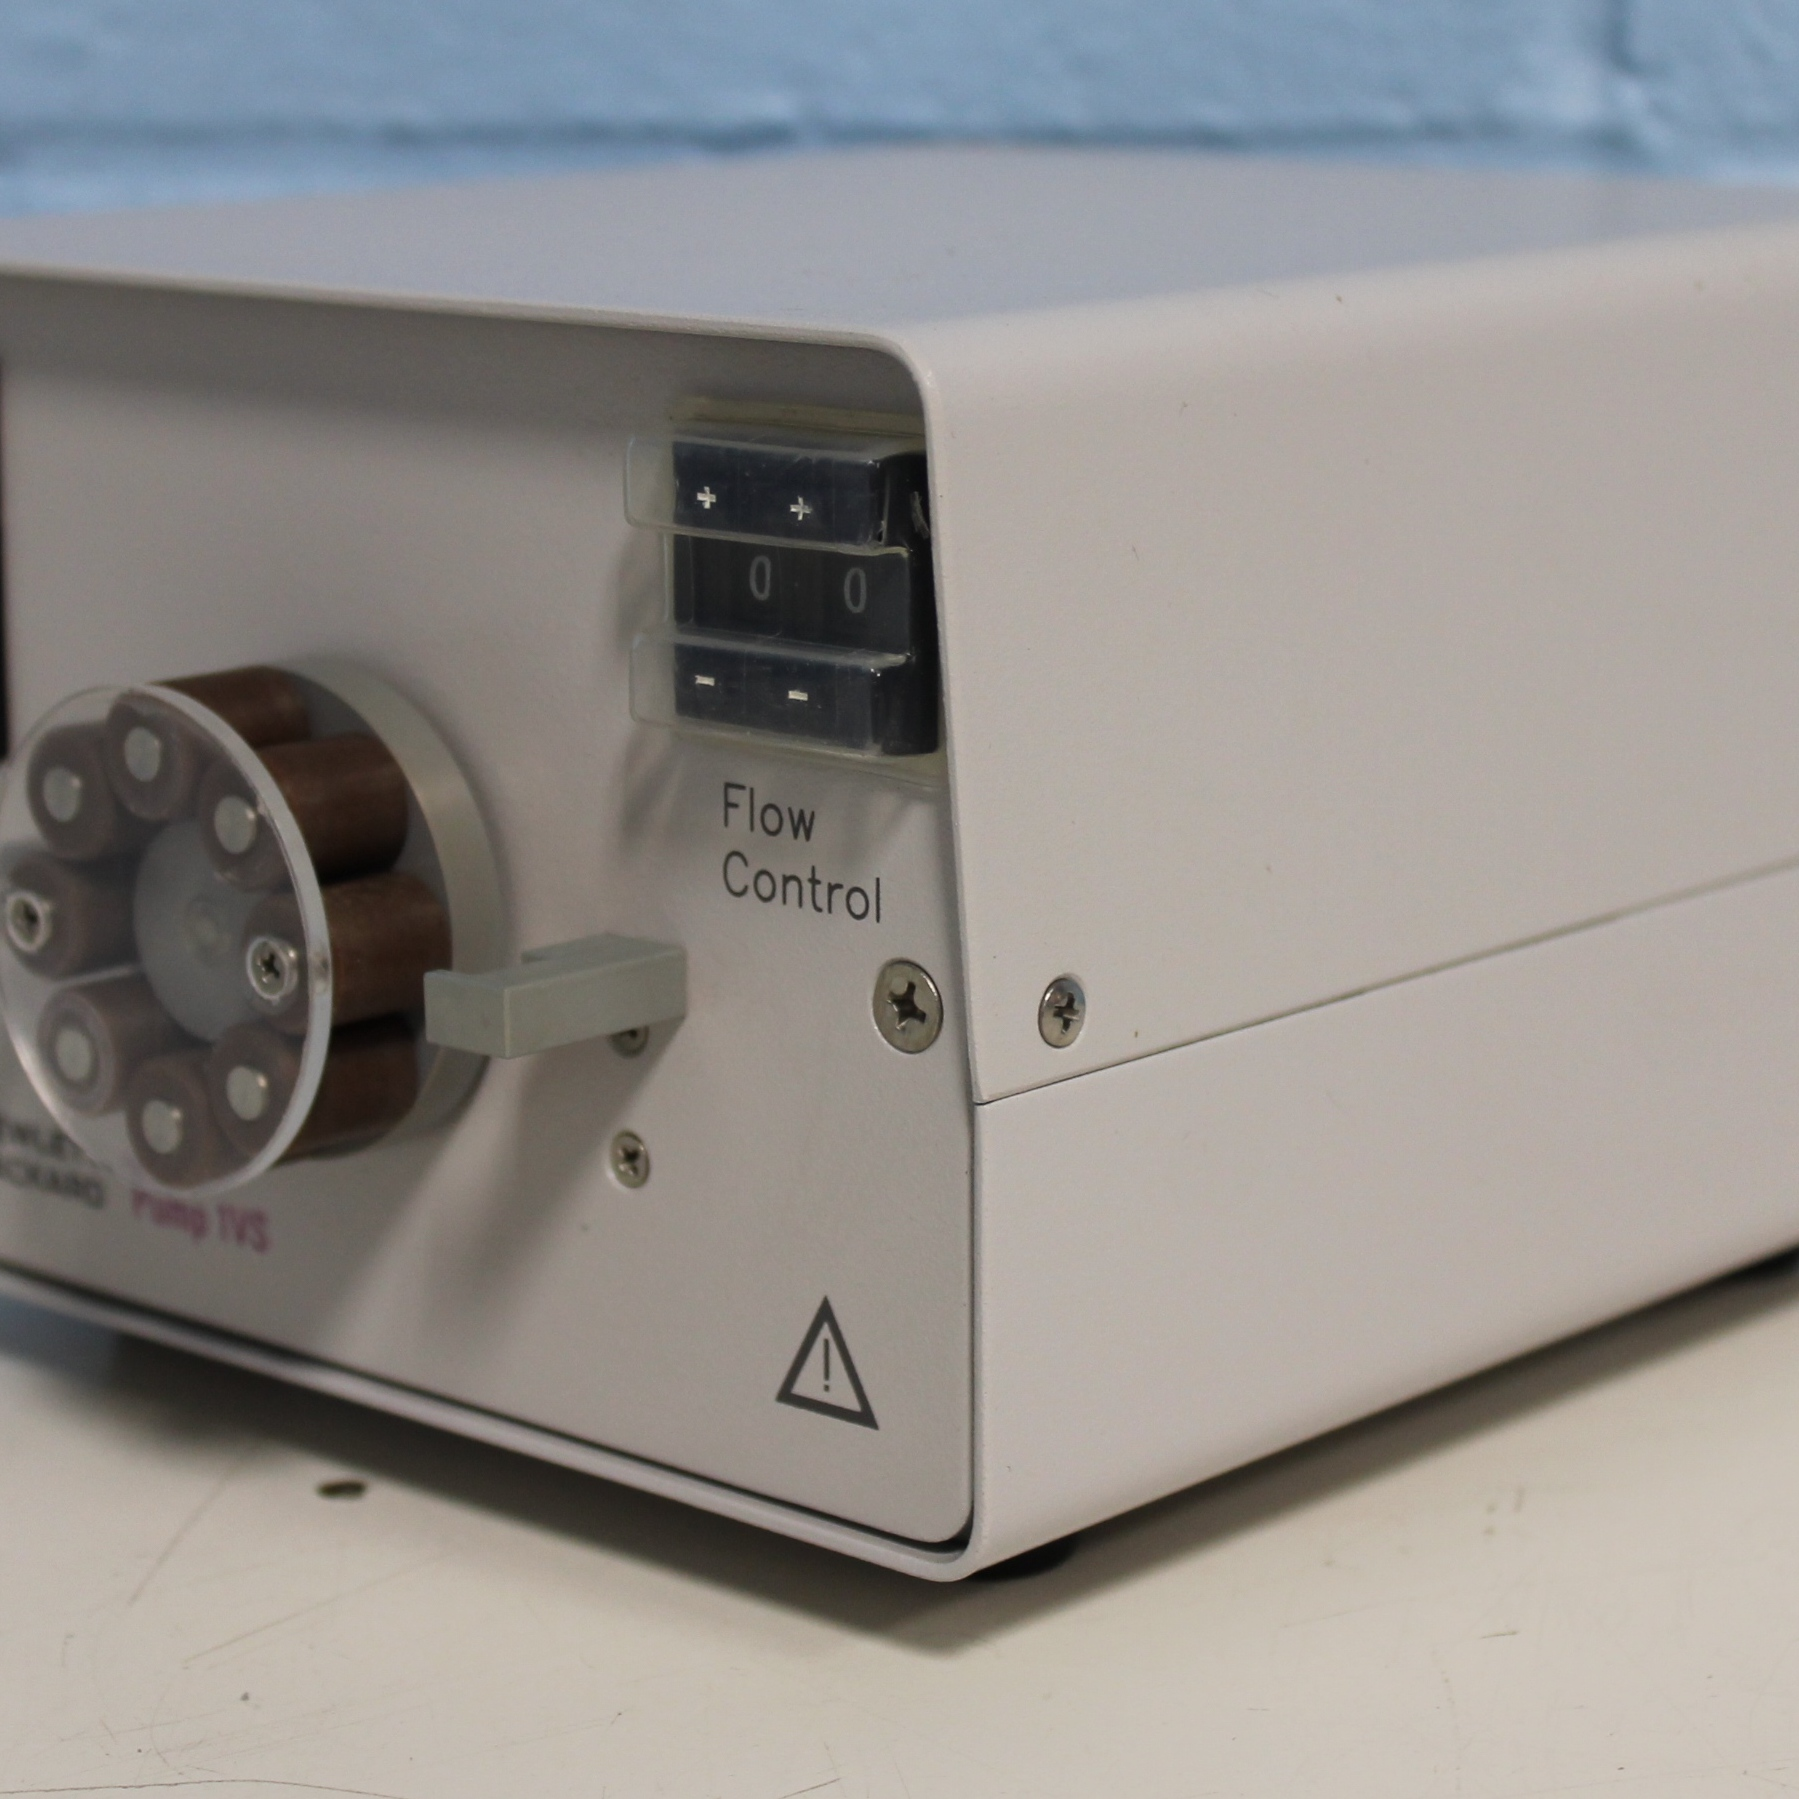 Hewlett Packard Peristaltic Pump 1 VS G1103 Image